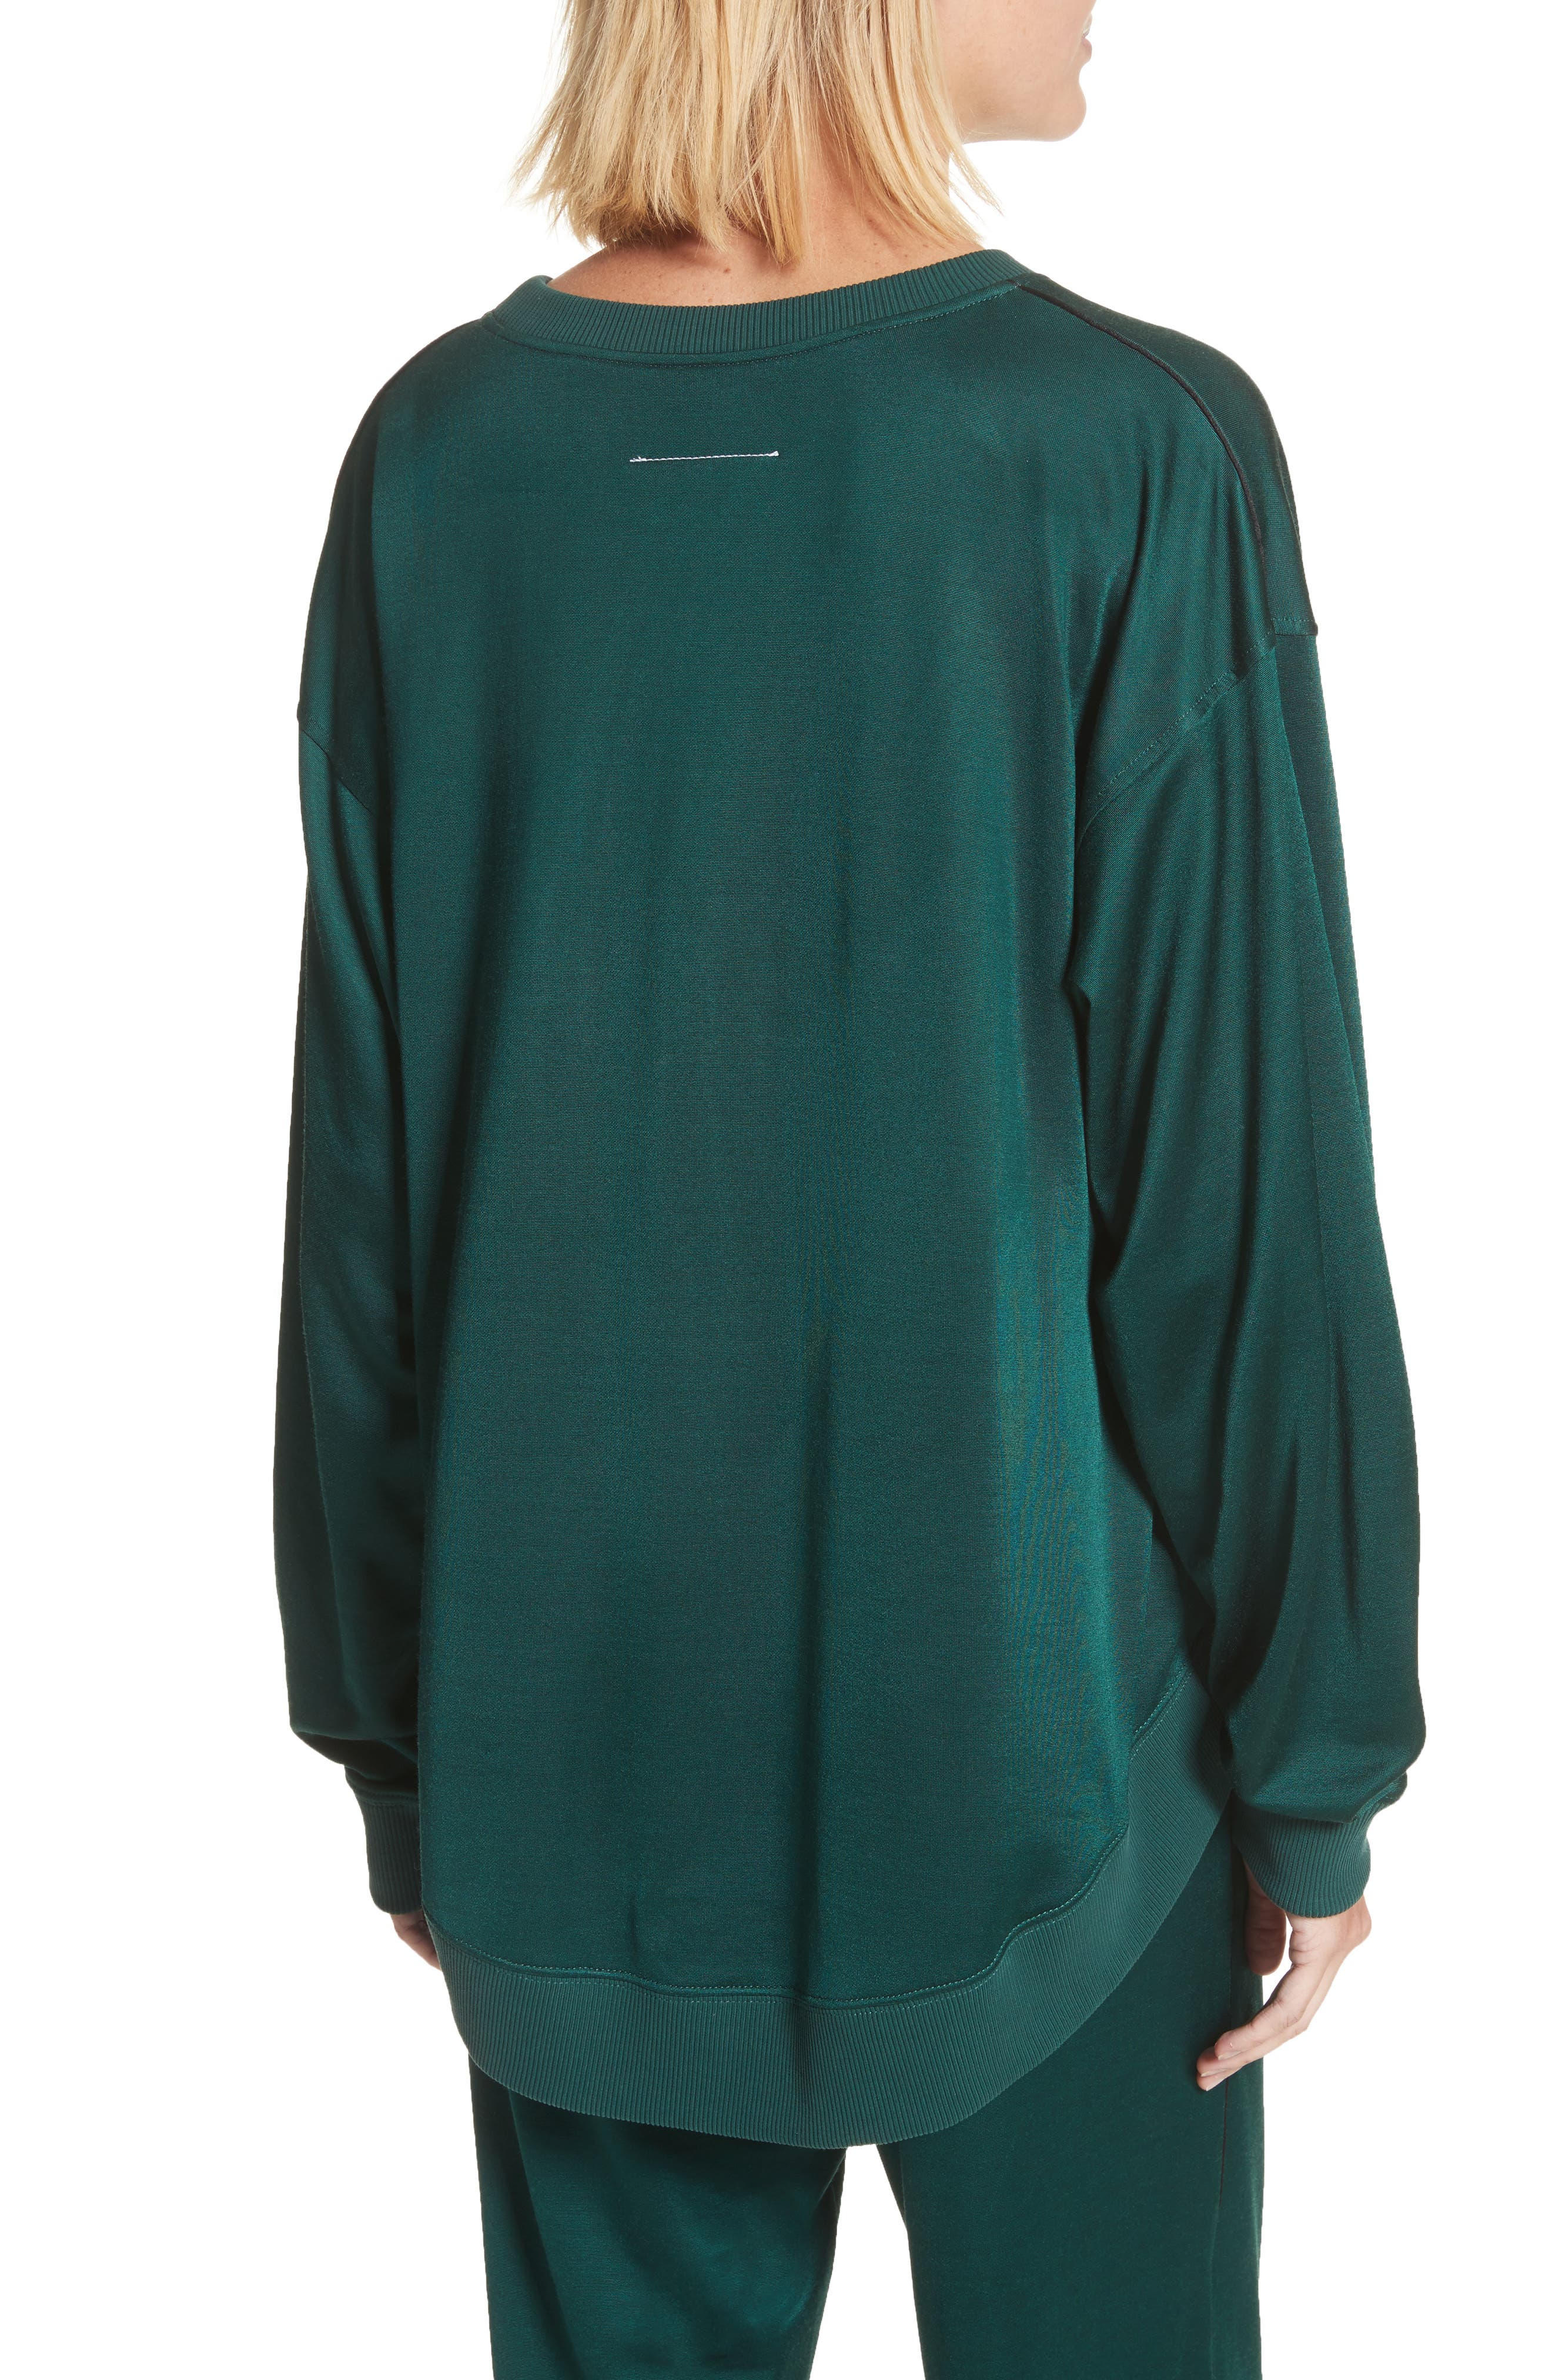 Track Suit Pullover,                             Alternate thumbnail 2, color,                             304